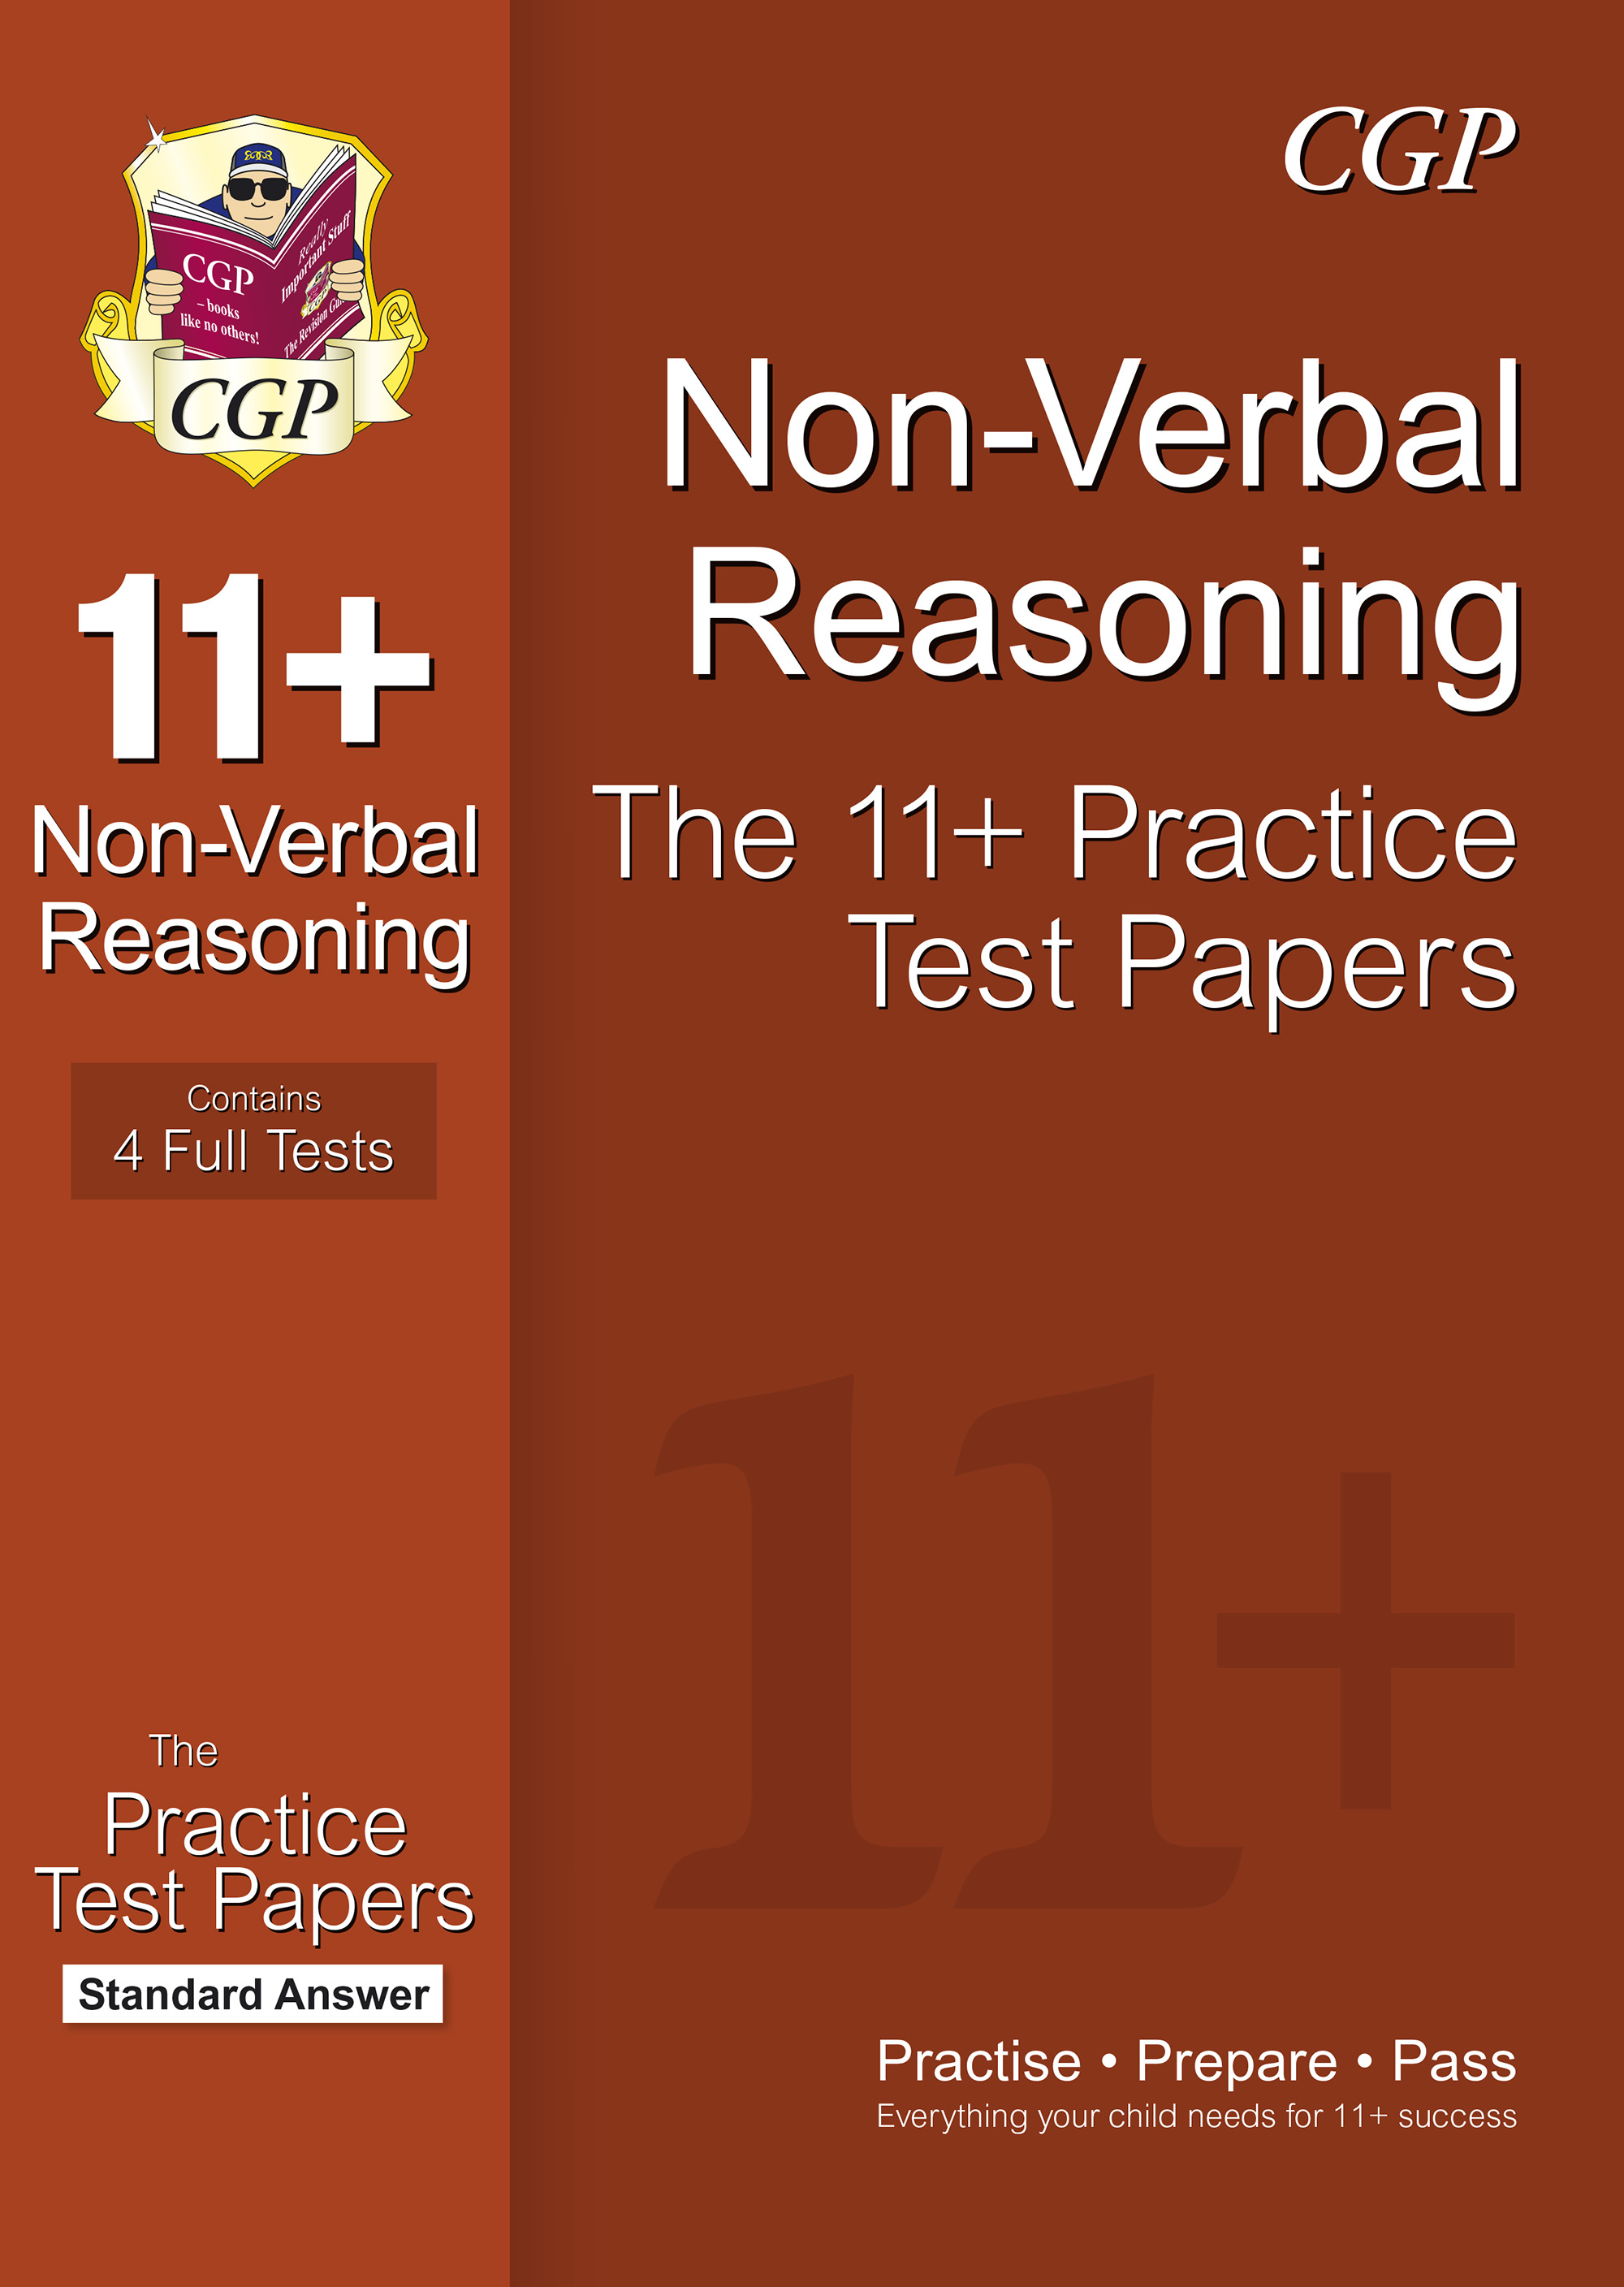 NHPE1 - 11+ Non-Verbal Reasoning Practice Papers: Standard Answers (for GL & Other Test Providers)